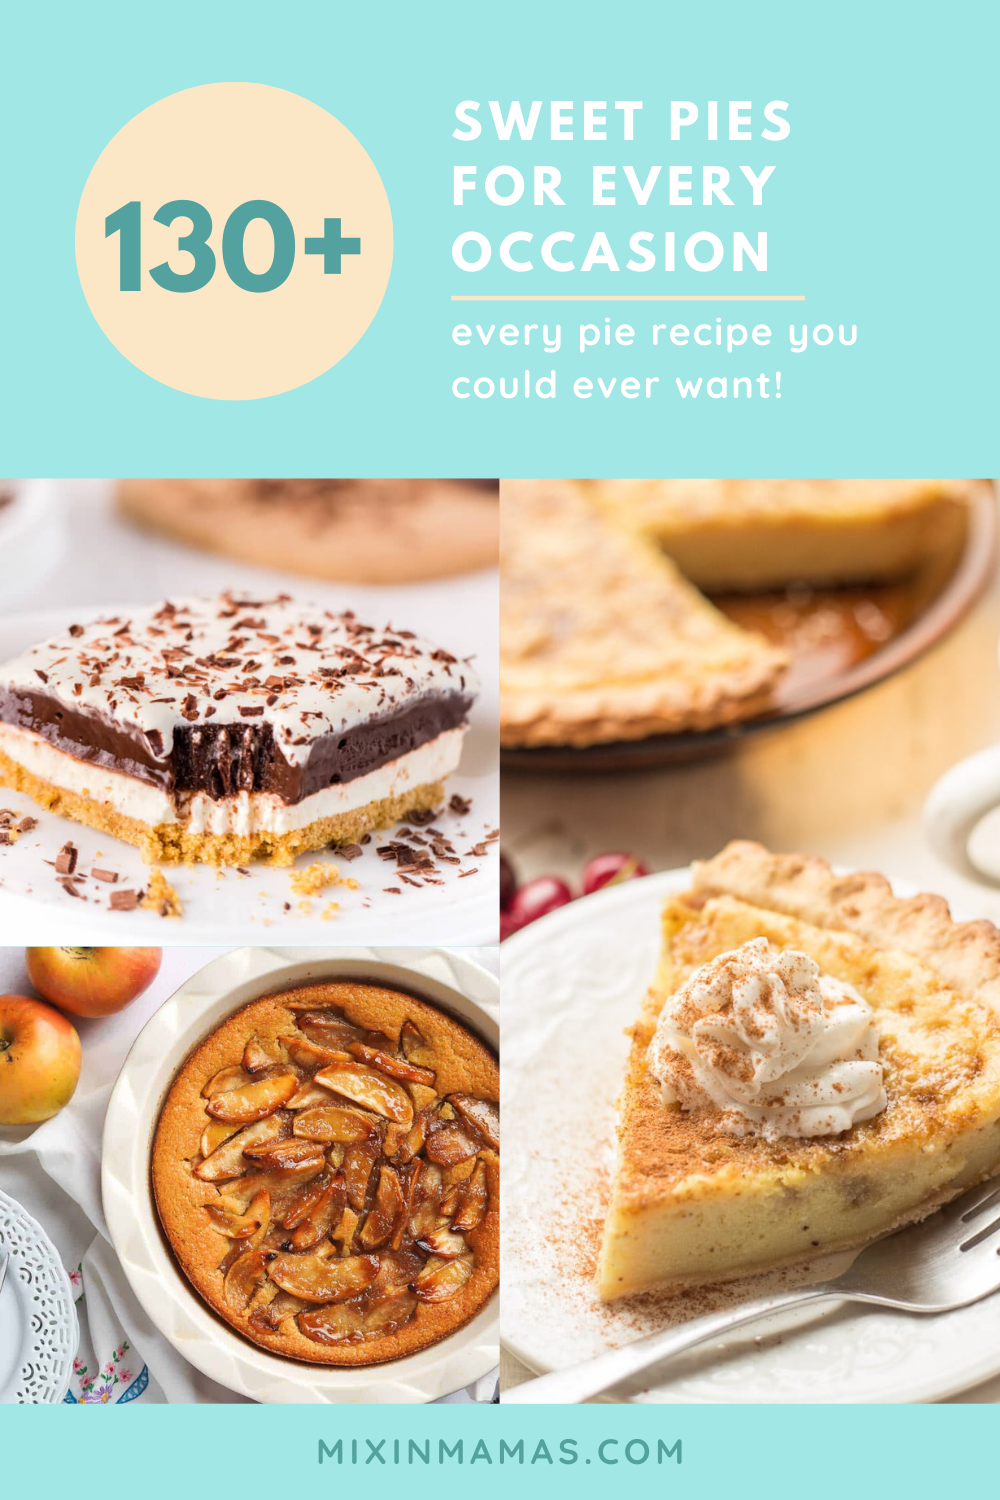 130+ sweet pie recipes for every occasion - every pie recipe you could ever want!